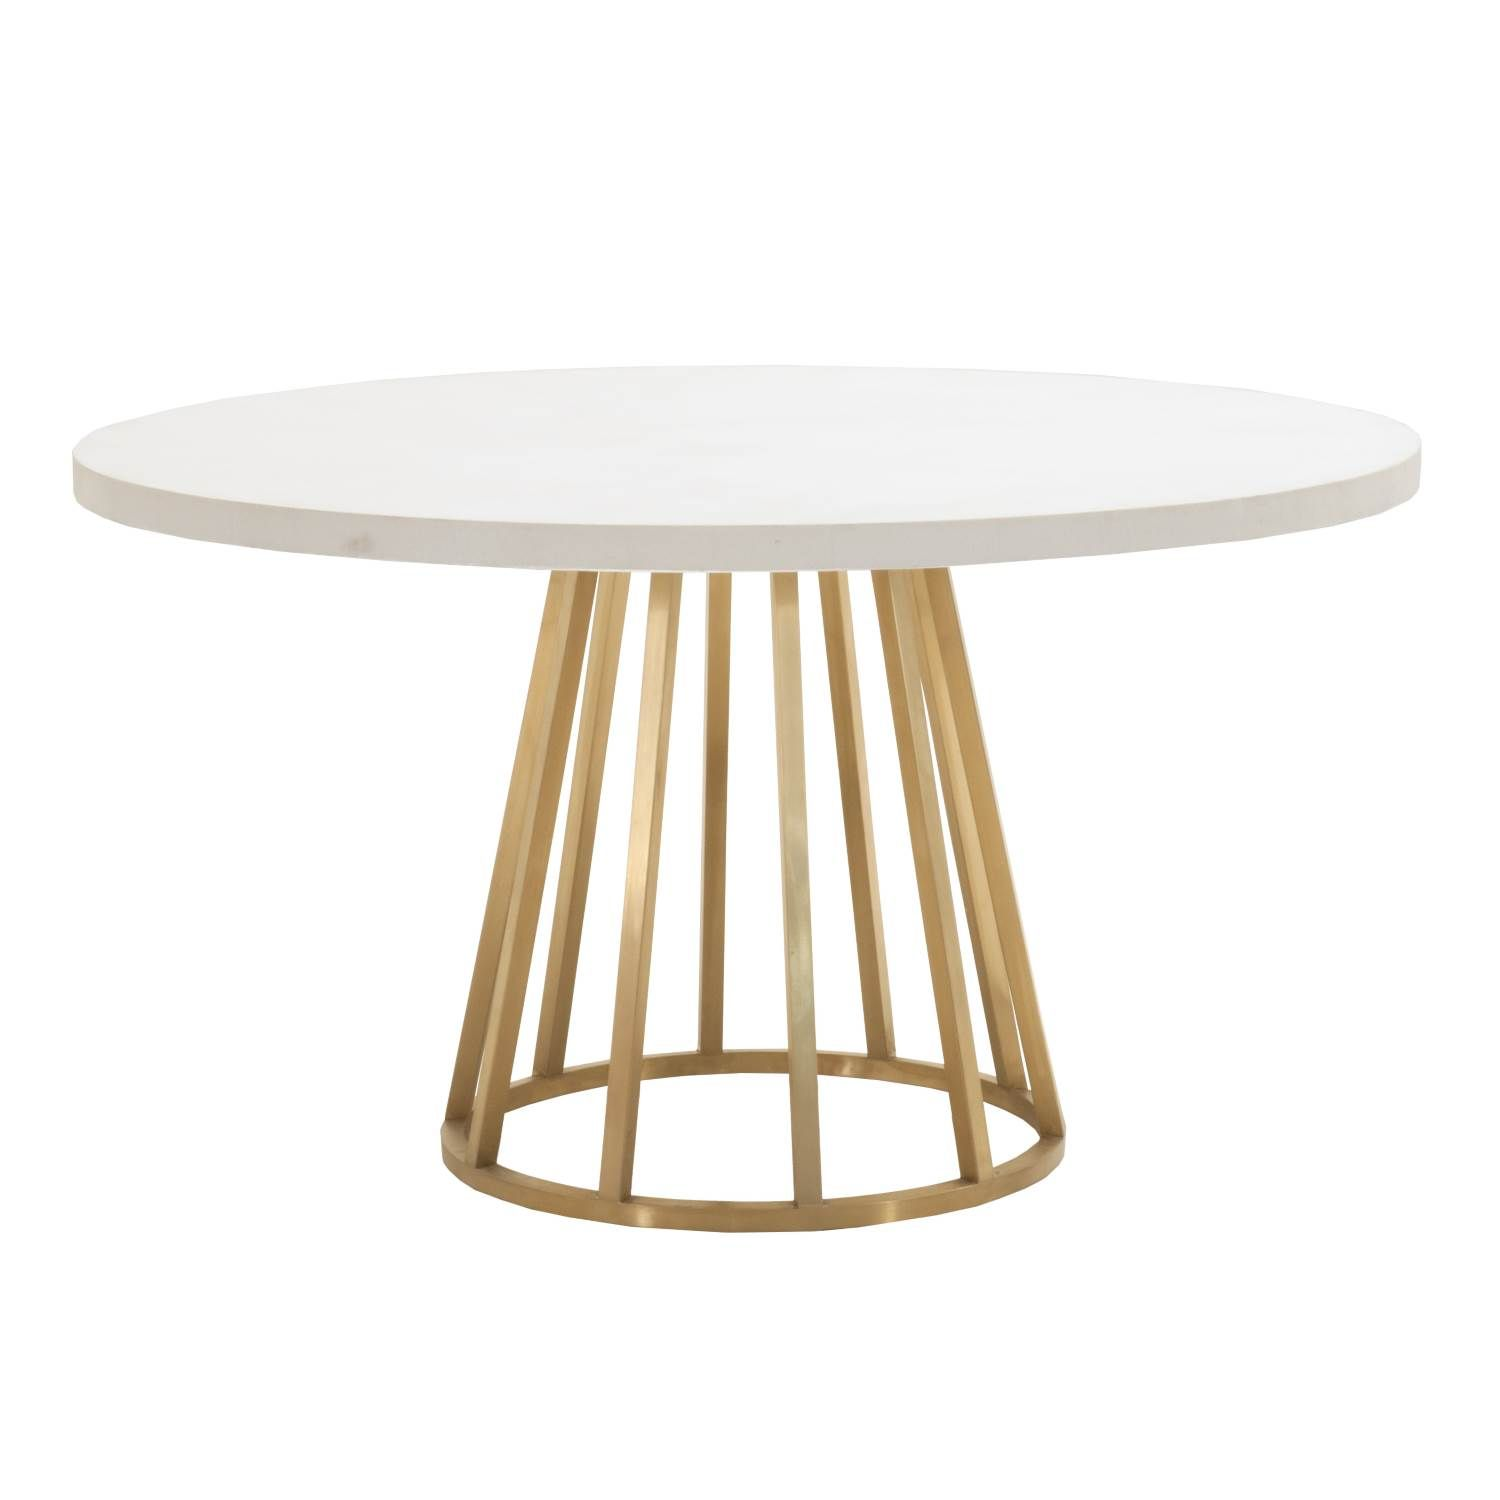 Annex 54 Round Dining Table Dining Table Gold Round Concrete